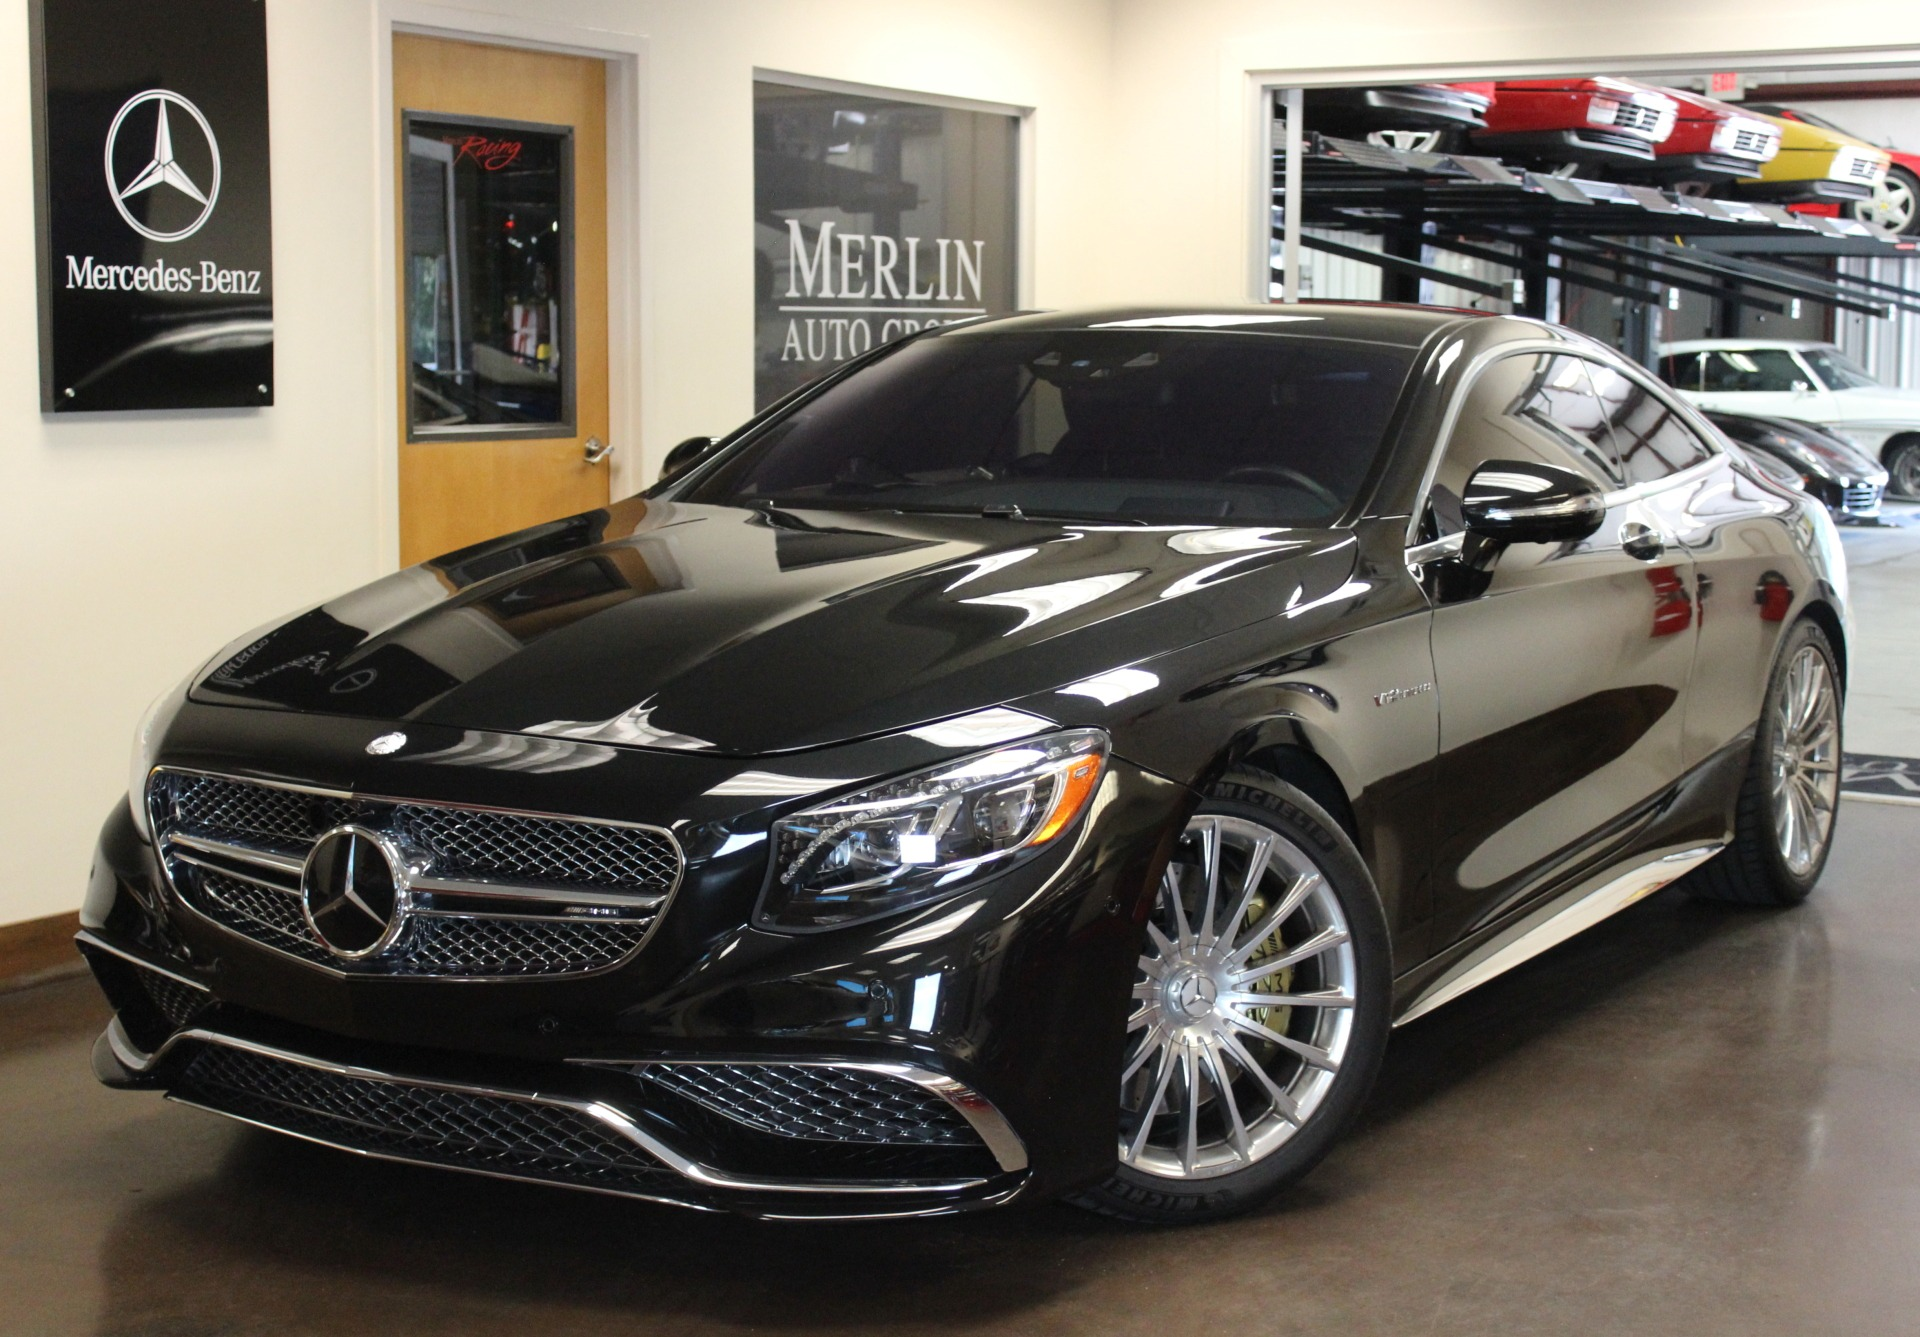 2015 Mercedes-Benz S-Class S65 AMG Coupe